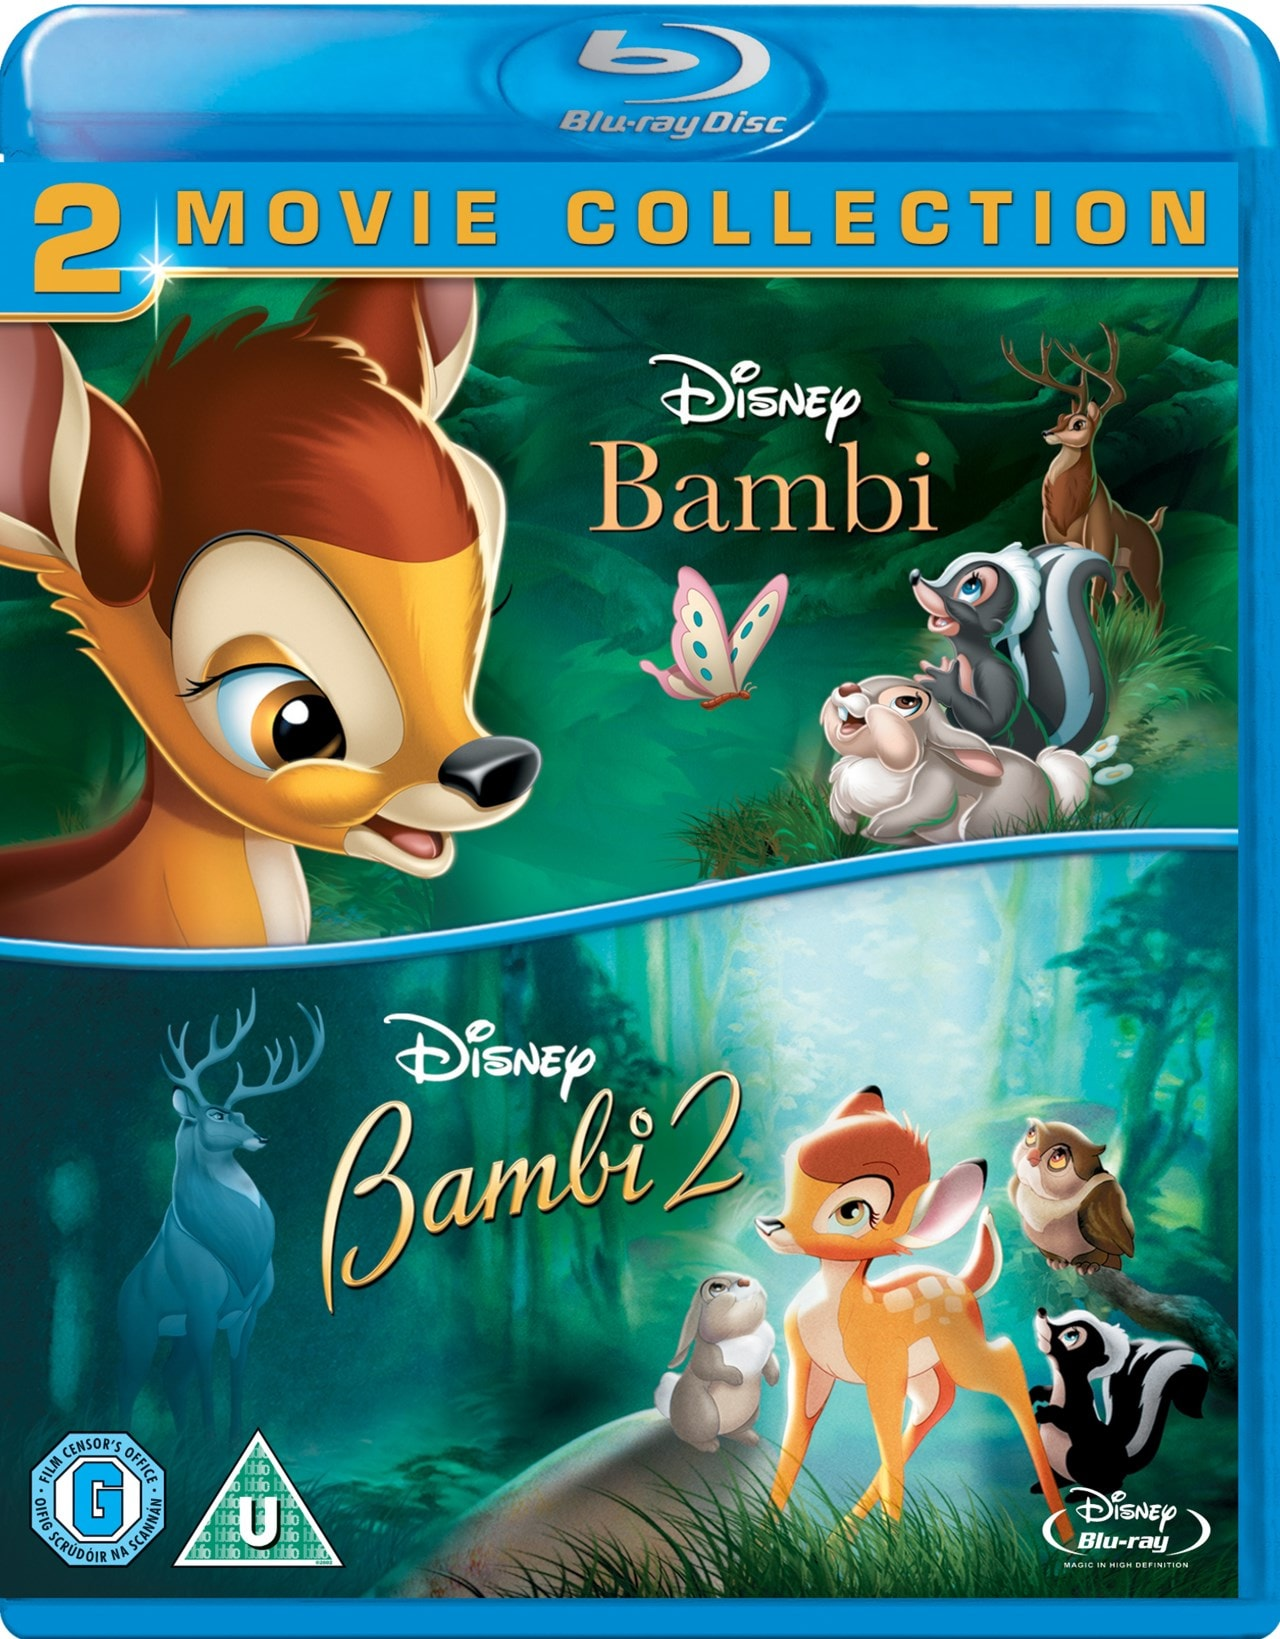 Bambi/Bambi 2 - The Great Prince of the Forest - 1